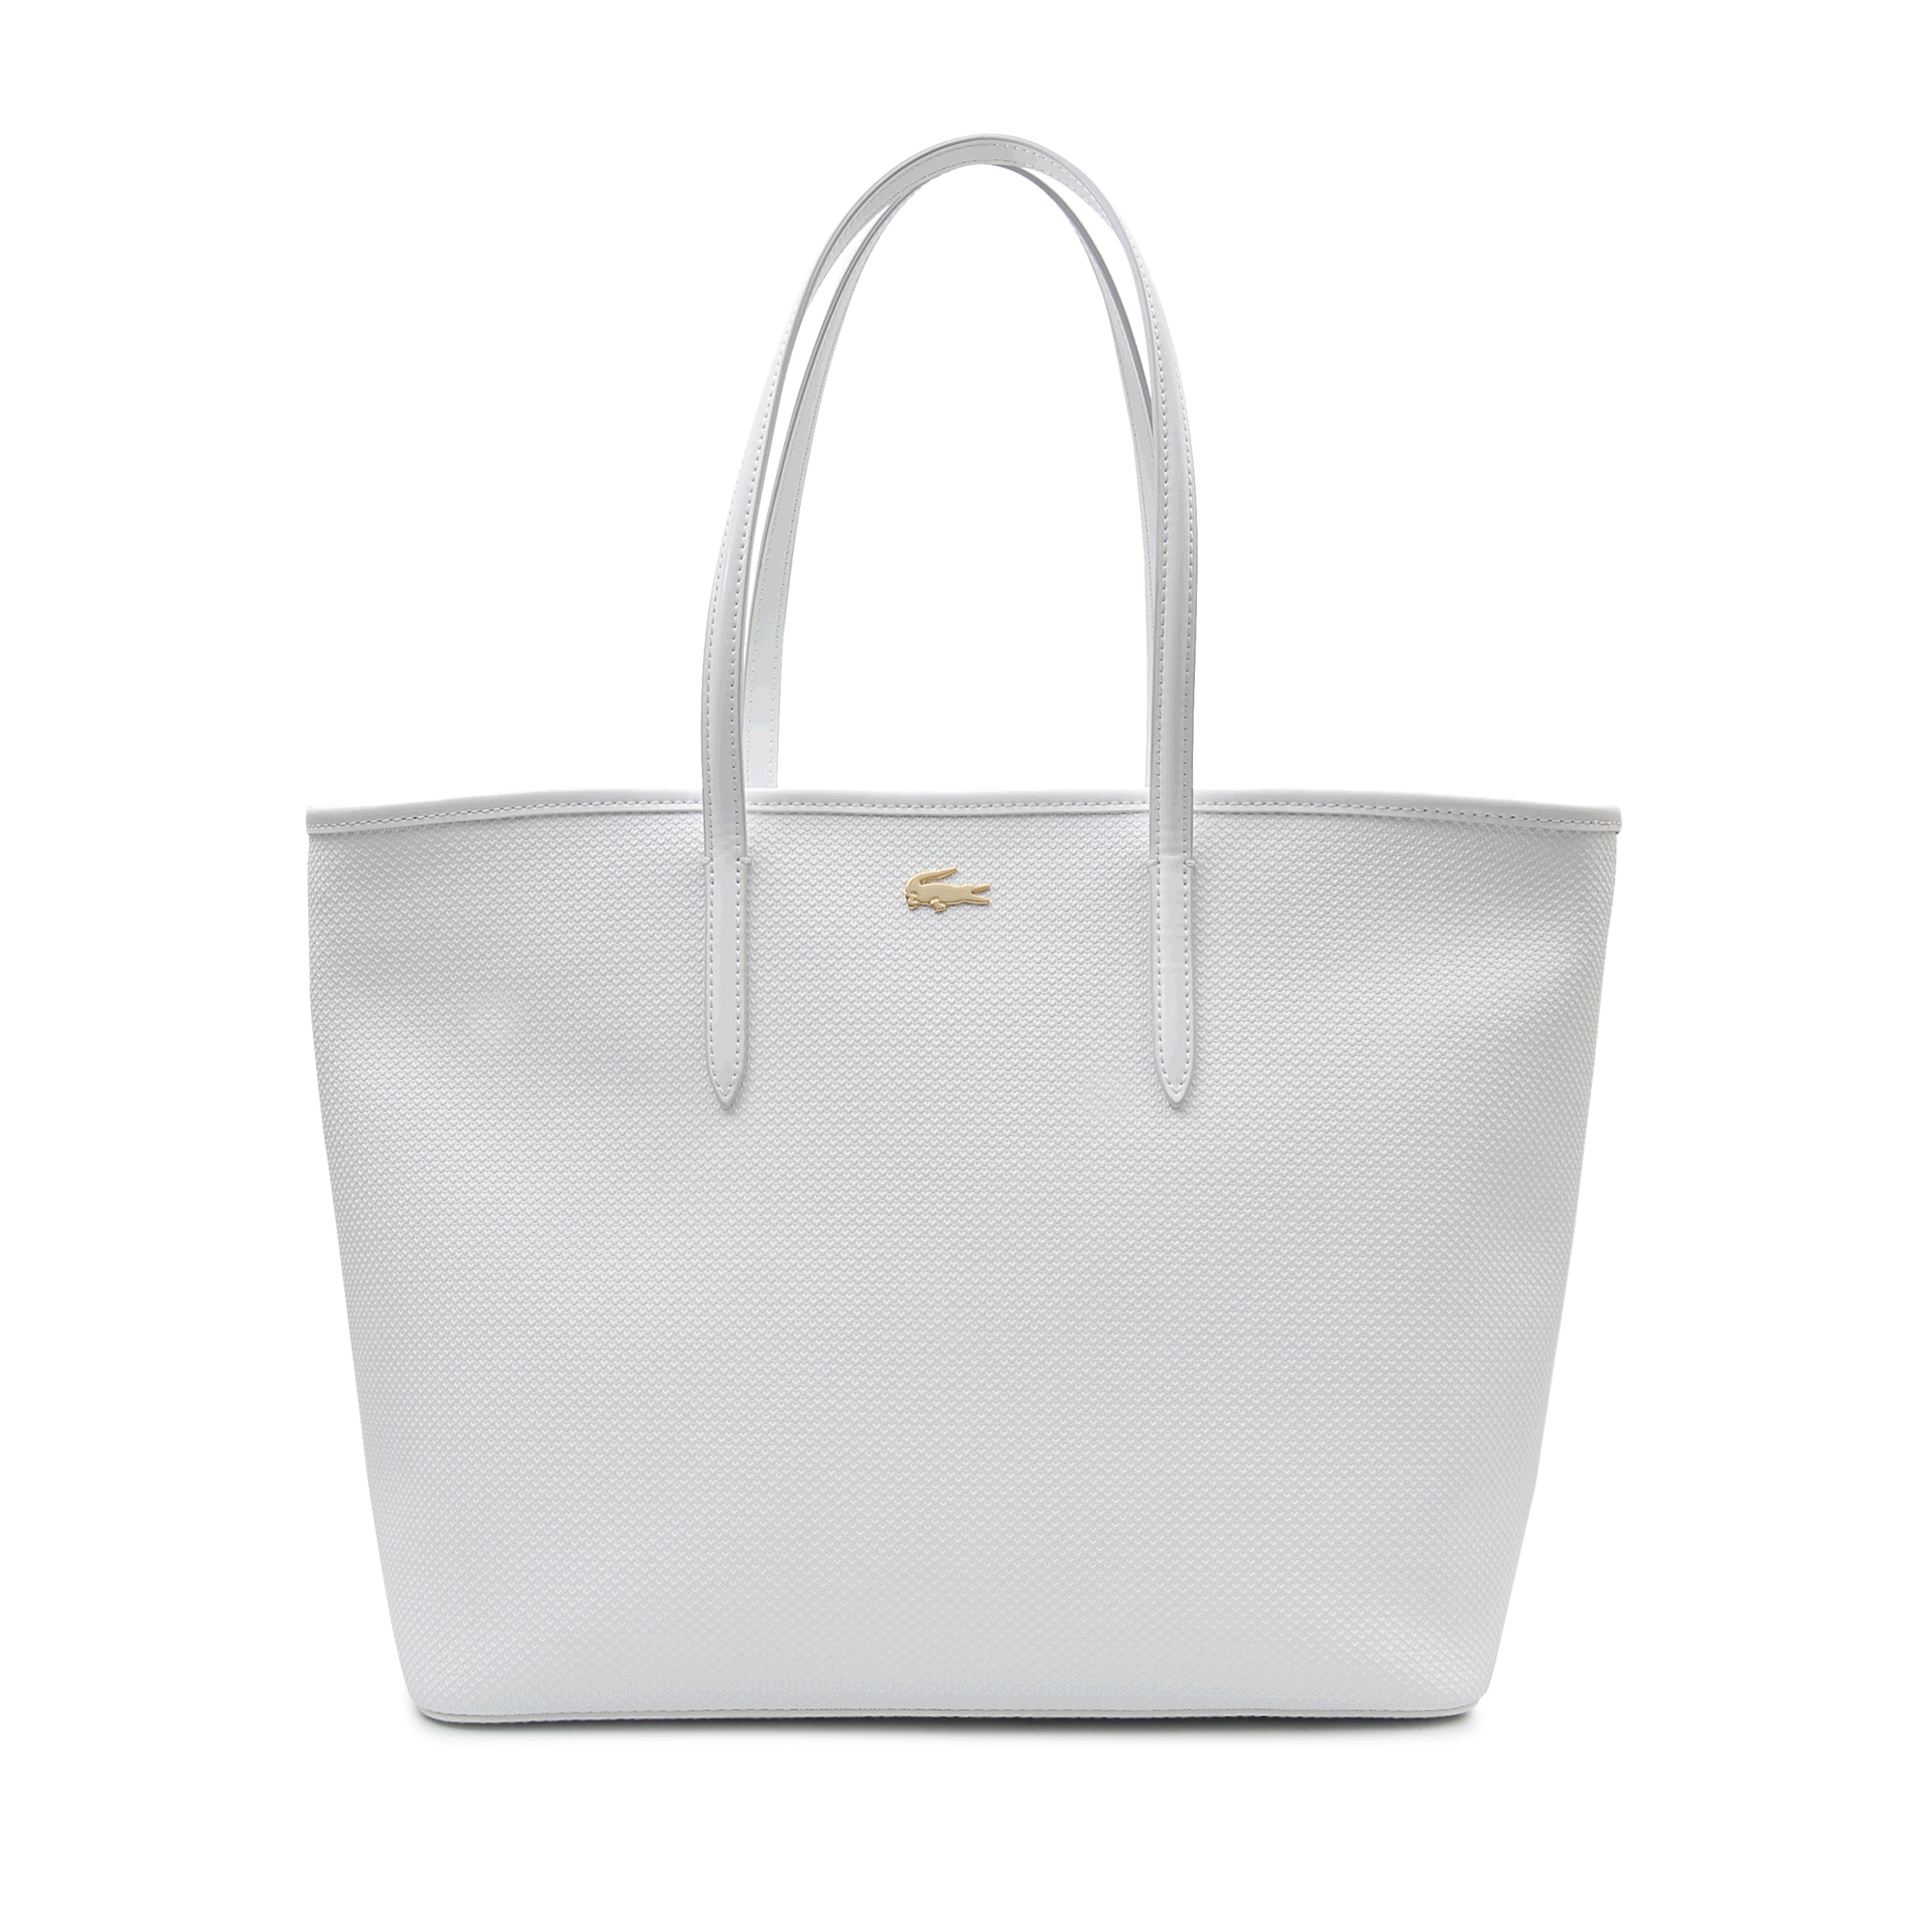 58bf9a82632 Lacoste Medium Chantaco Zip Tote in White - Lyst